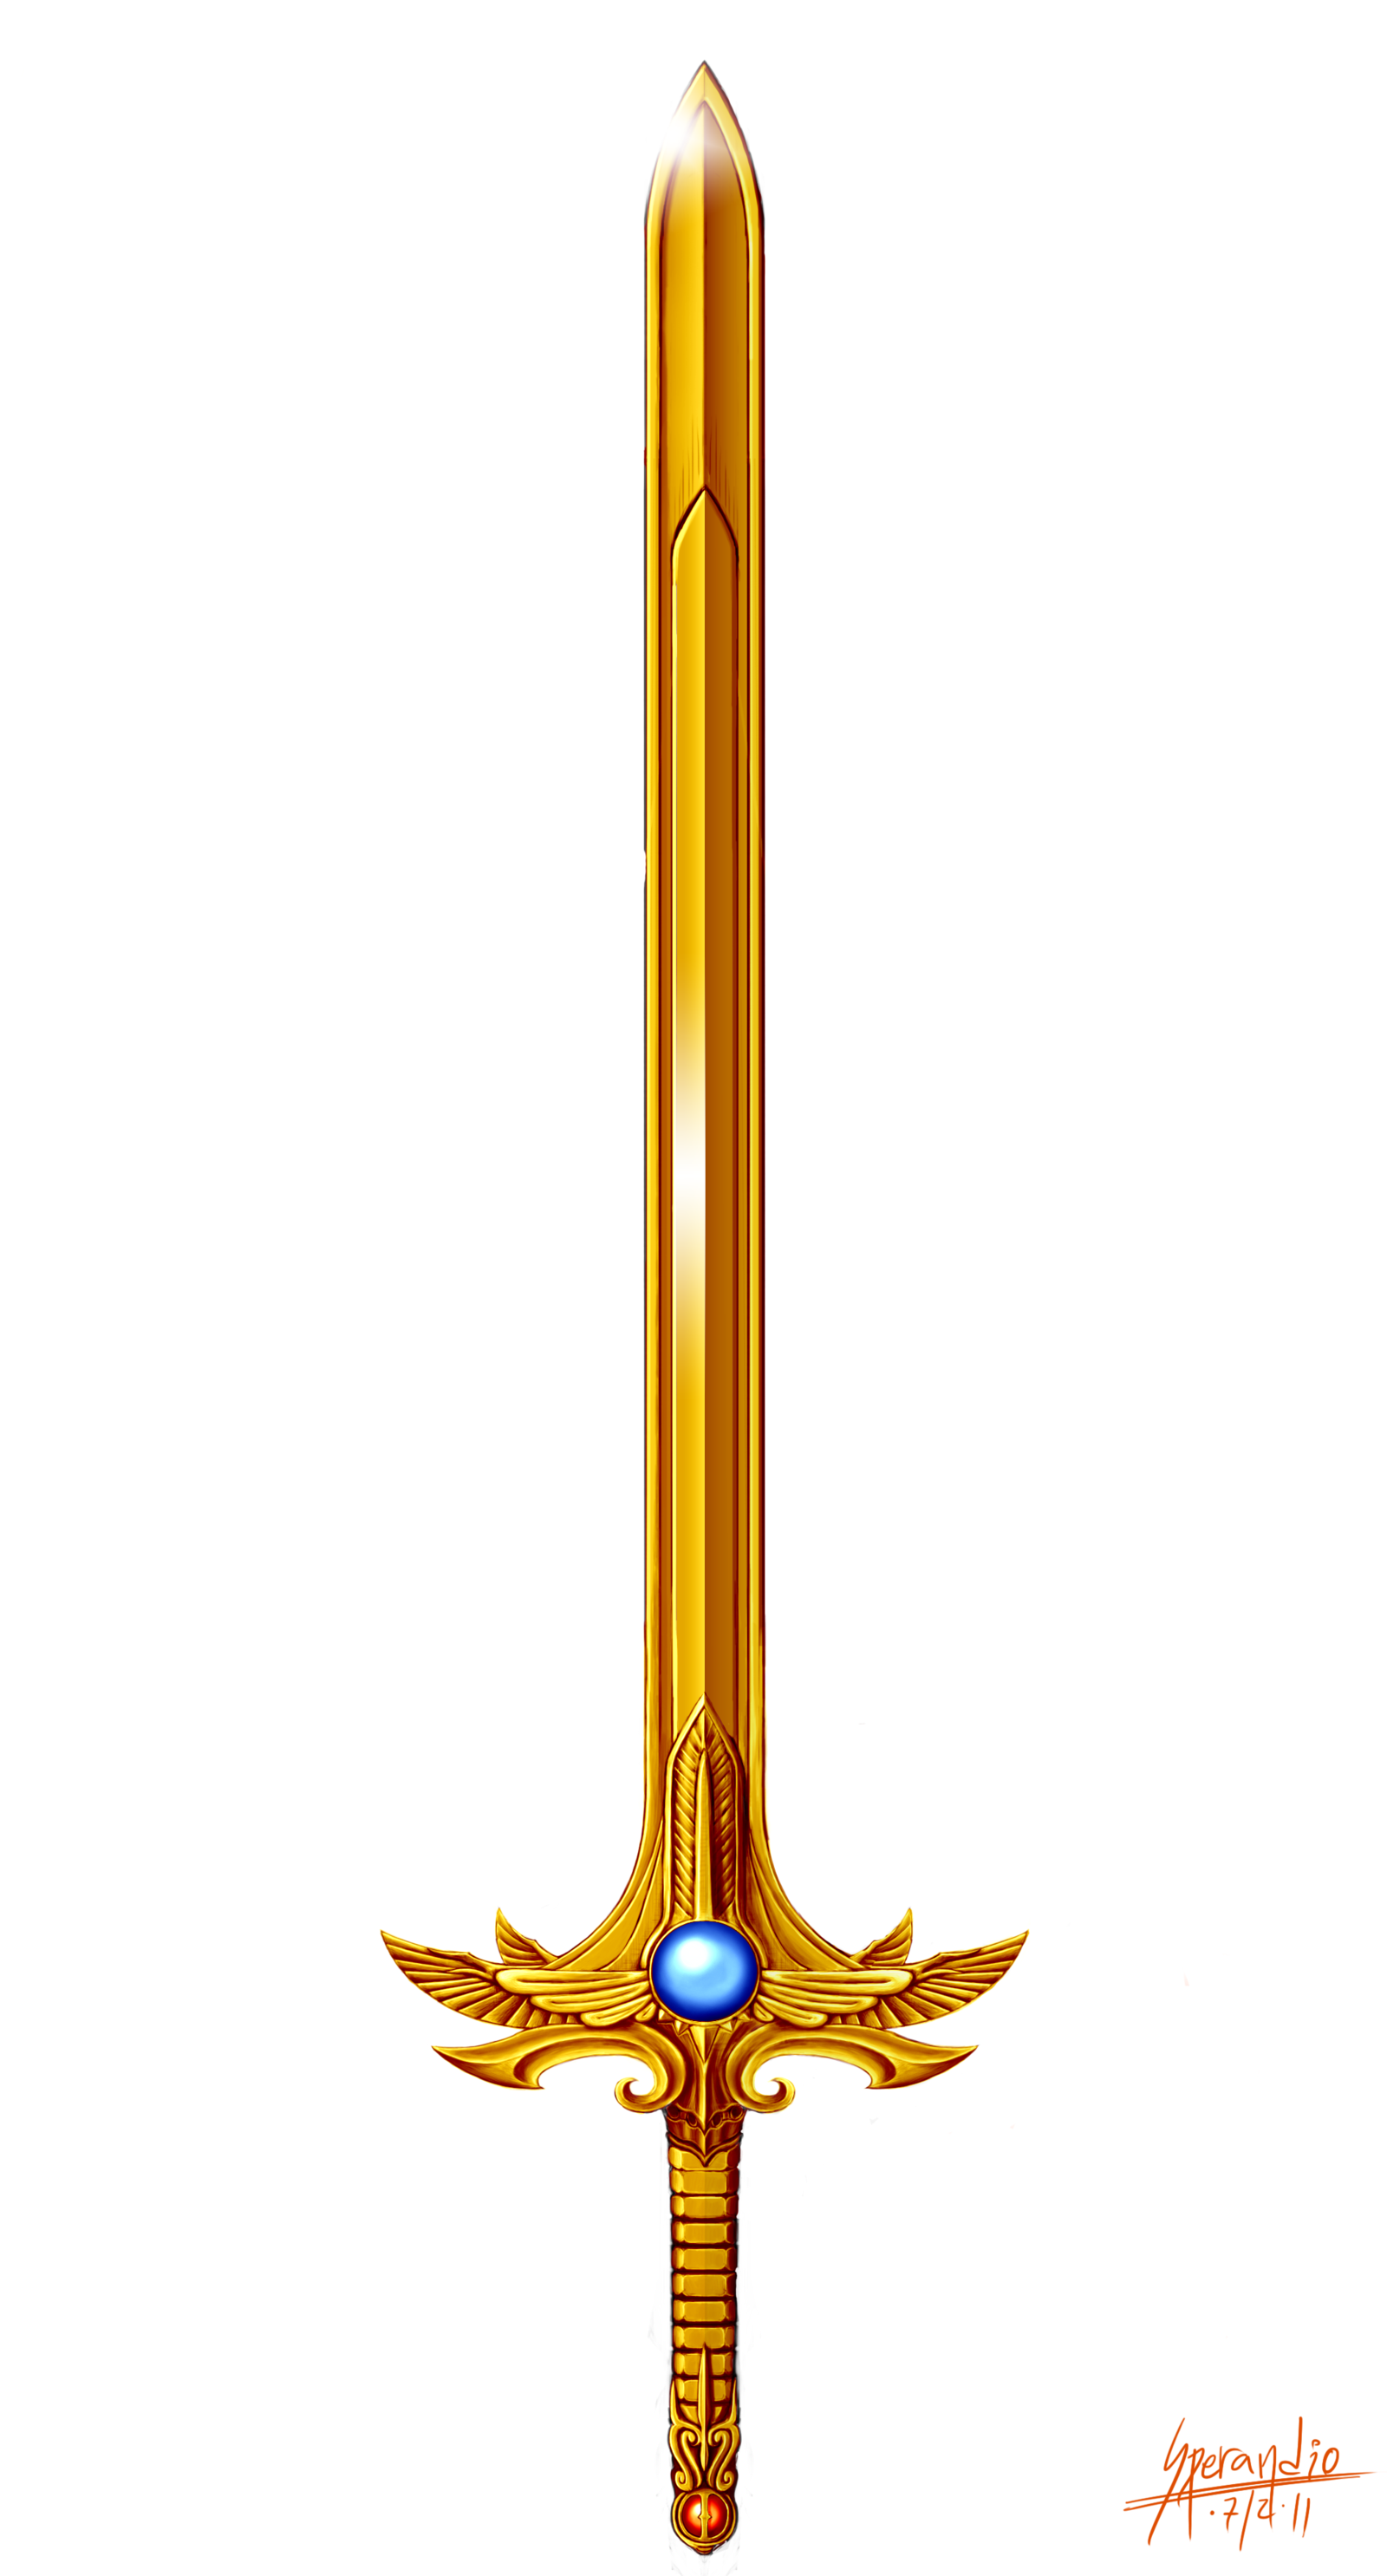 Drawn weapon legendary Golden by by Sacred DeviantArt